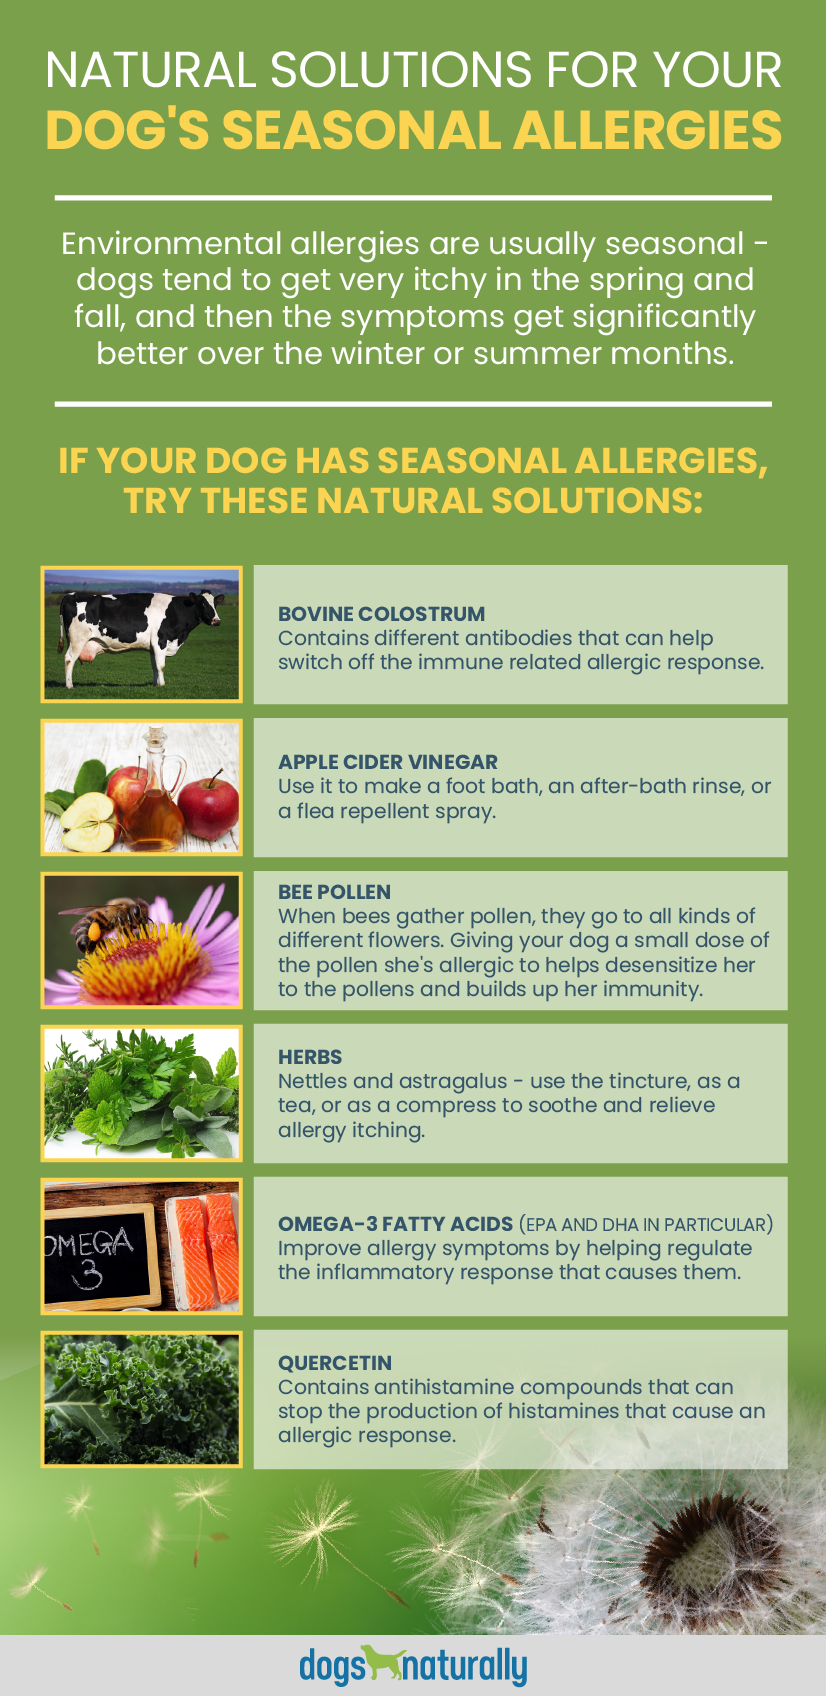 6 Natural Solutions For Environmental Allergies In Dogs Dogs Naturally Dog Allergies Remedies Dog Allergies Dog Remedies